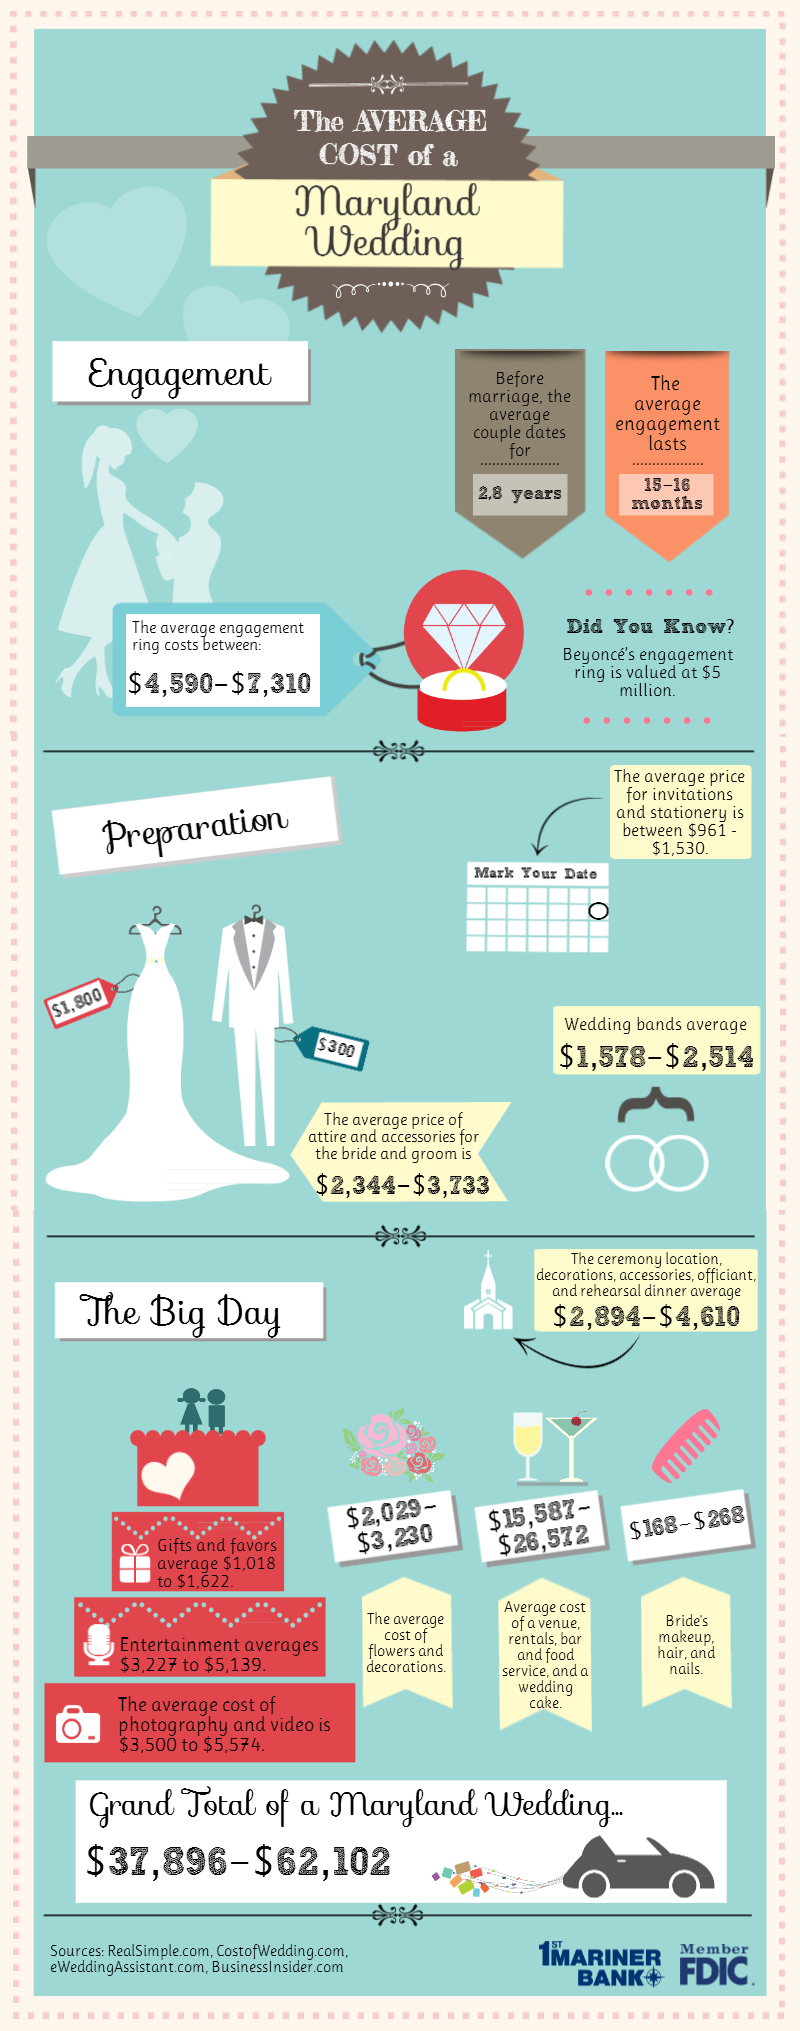 Infographic Average Cost of a Maryland Wedding